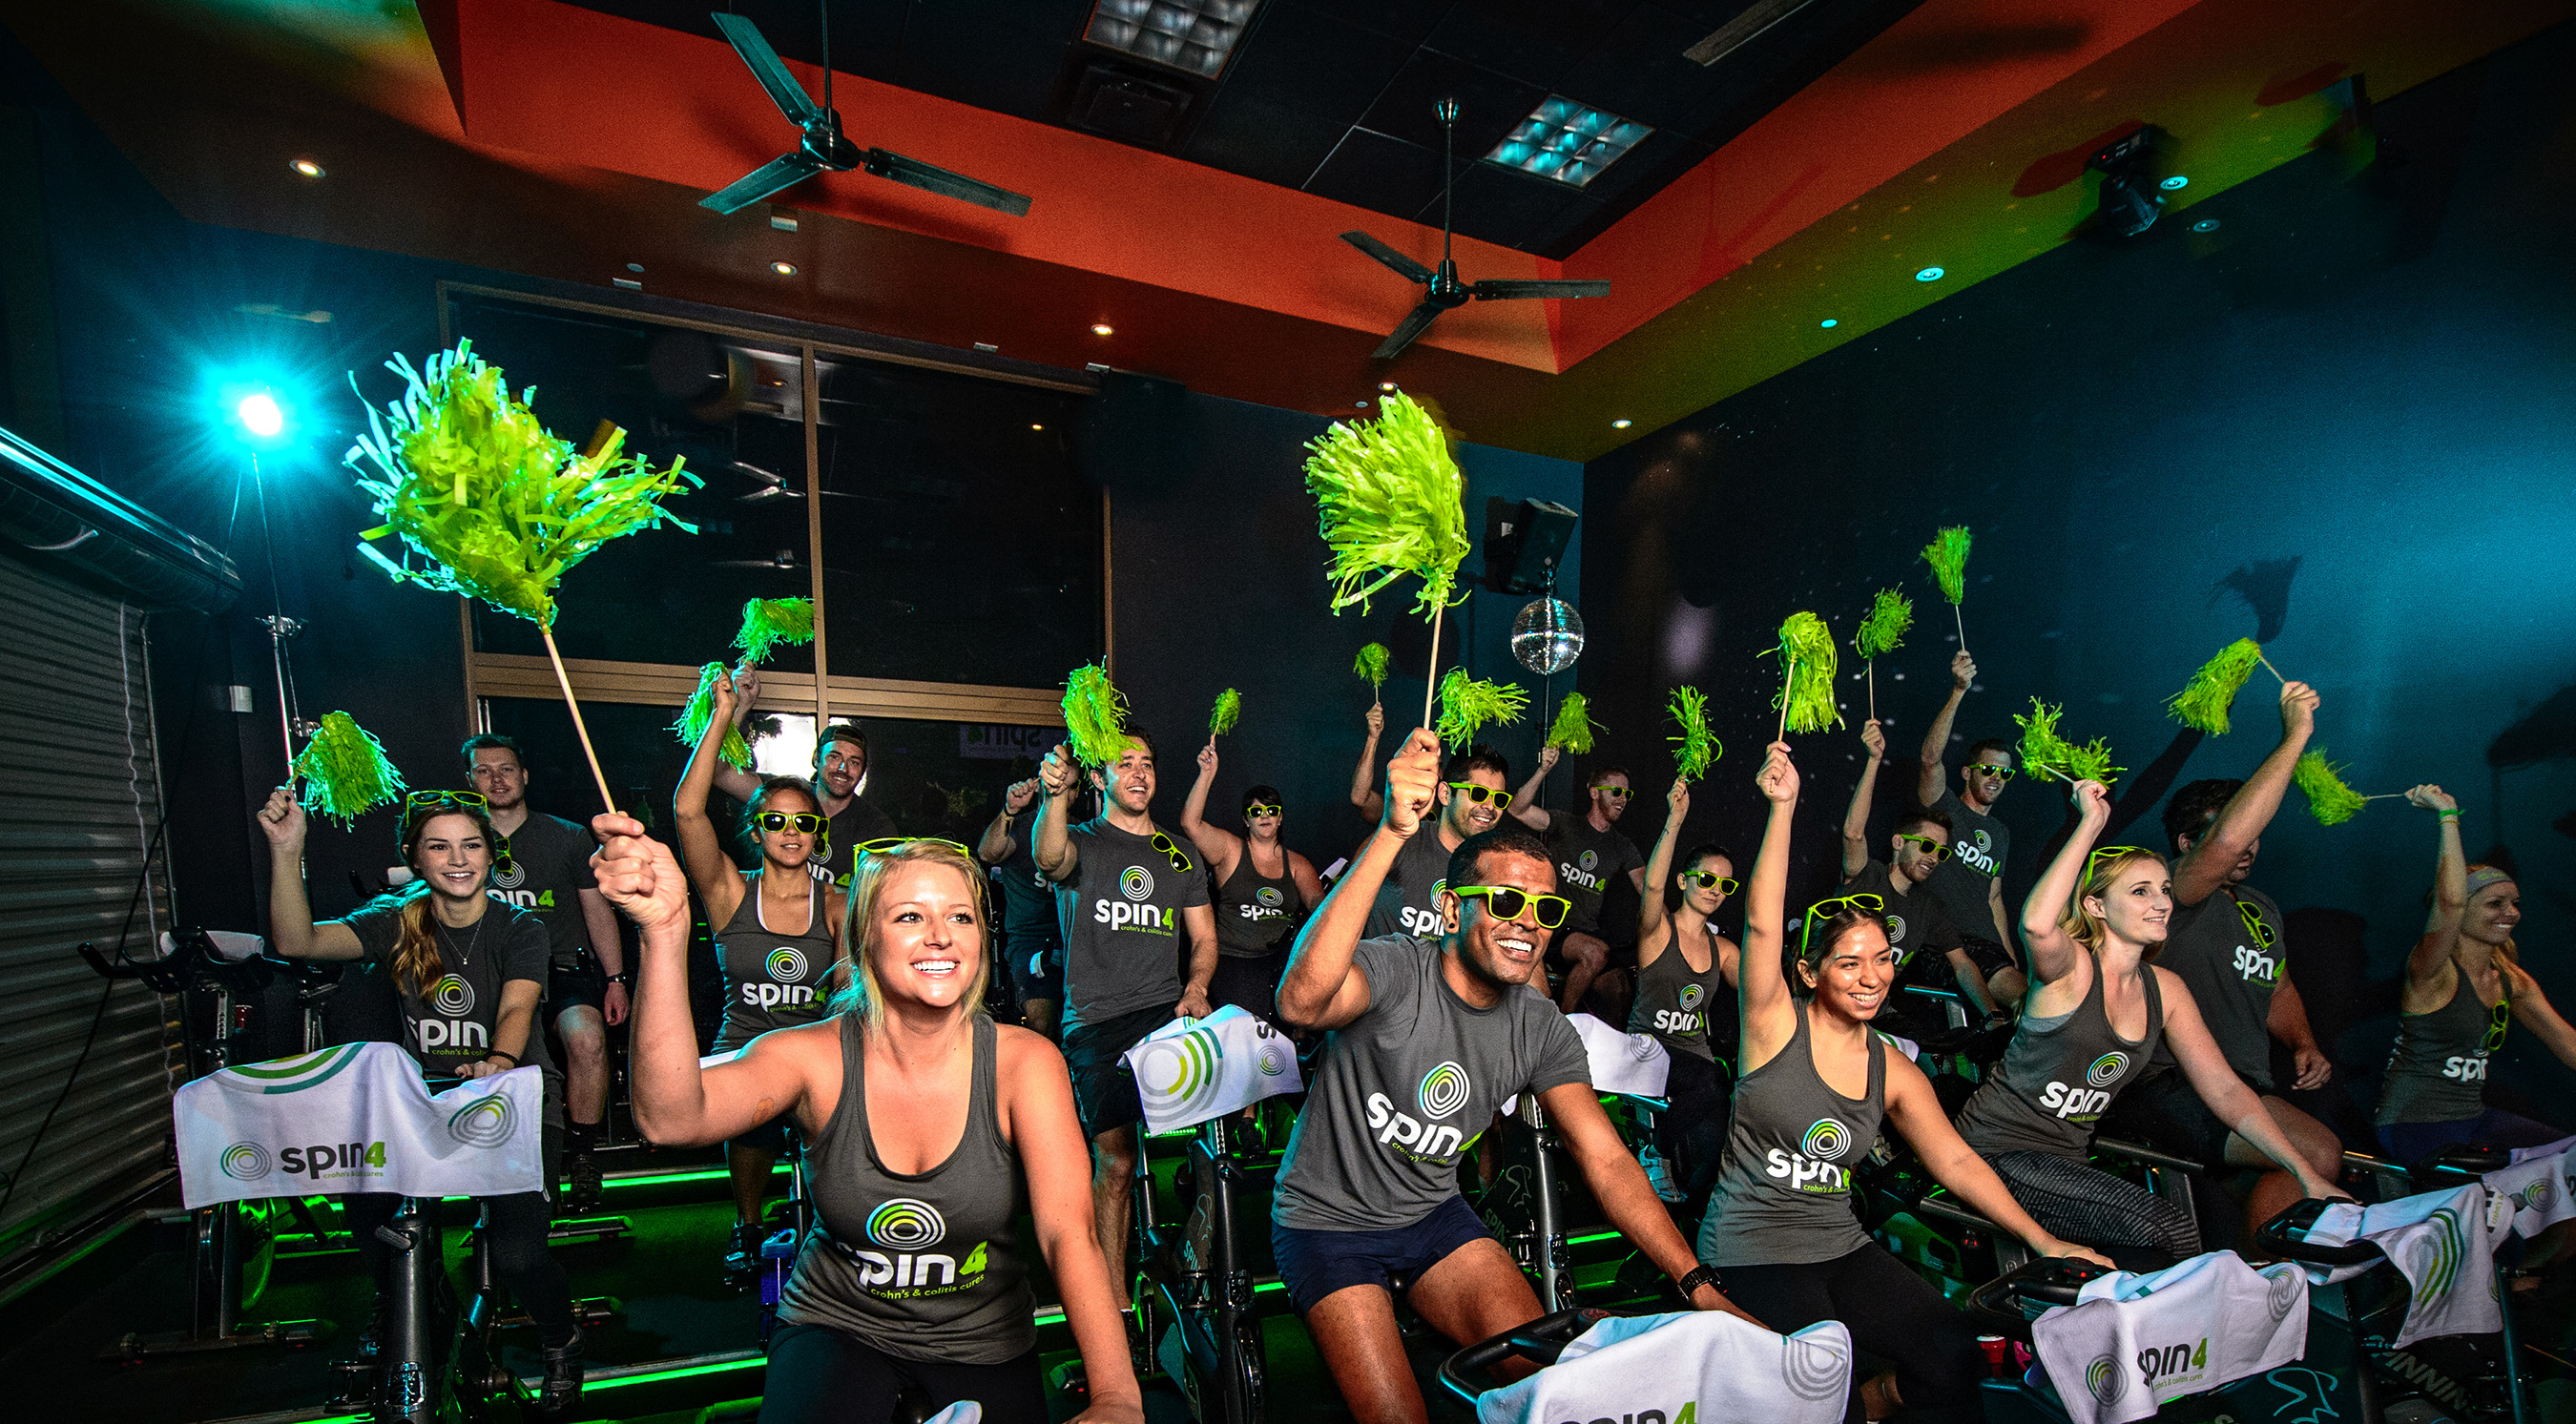 spin4 crohn's & colitis cures in 2017